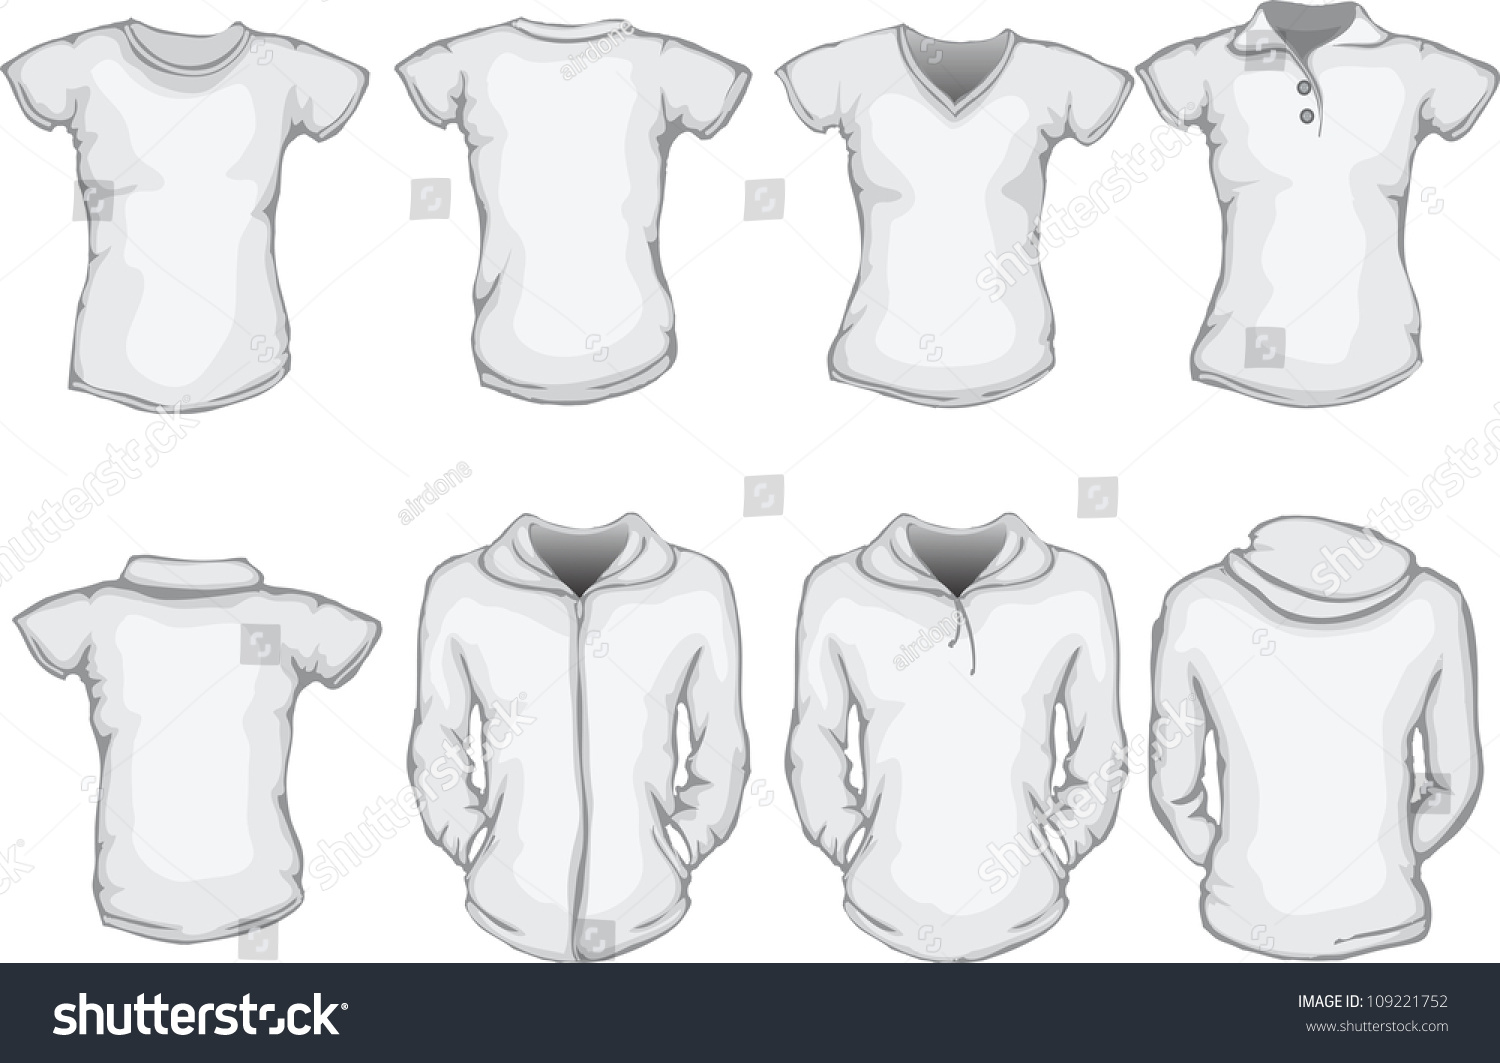 White t shirt front and back template - Vector Illustration Of Female Blank Shirts Template In White Front And Back Design Check